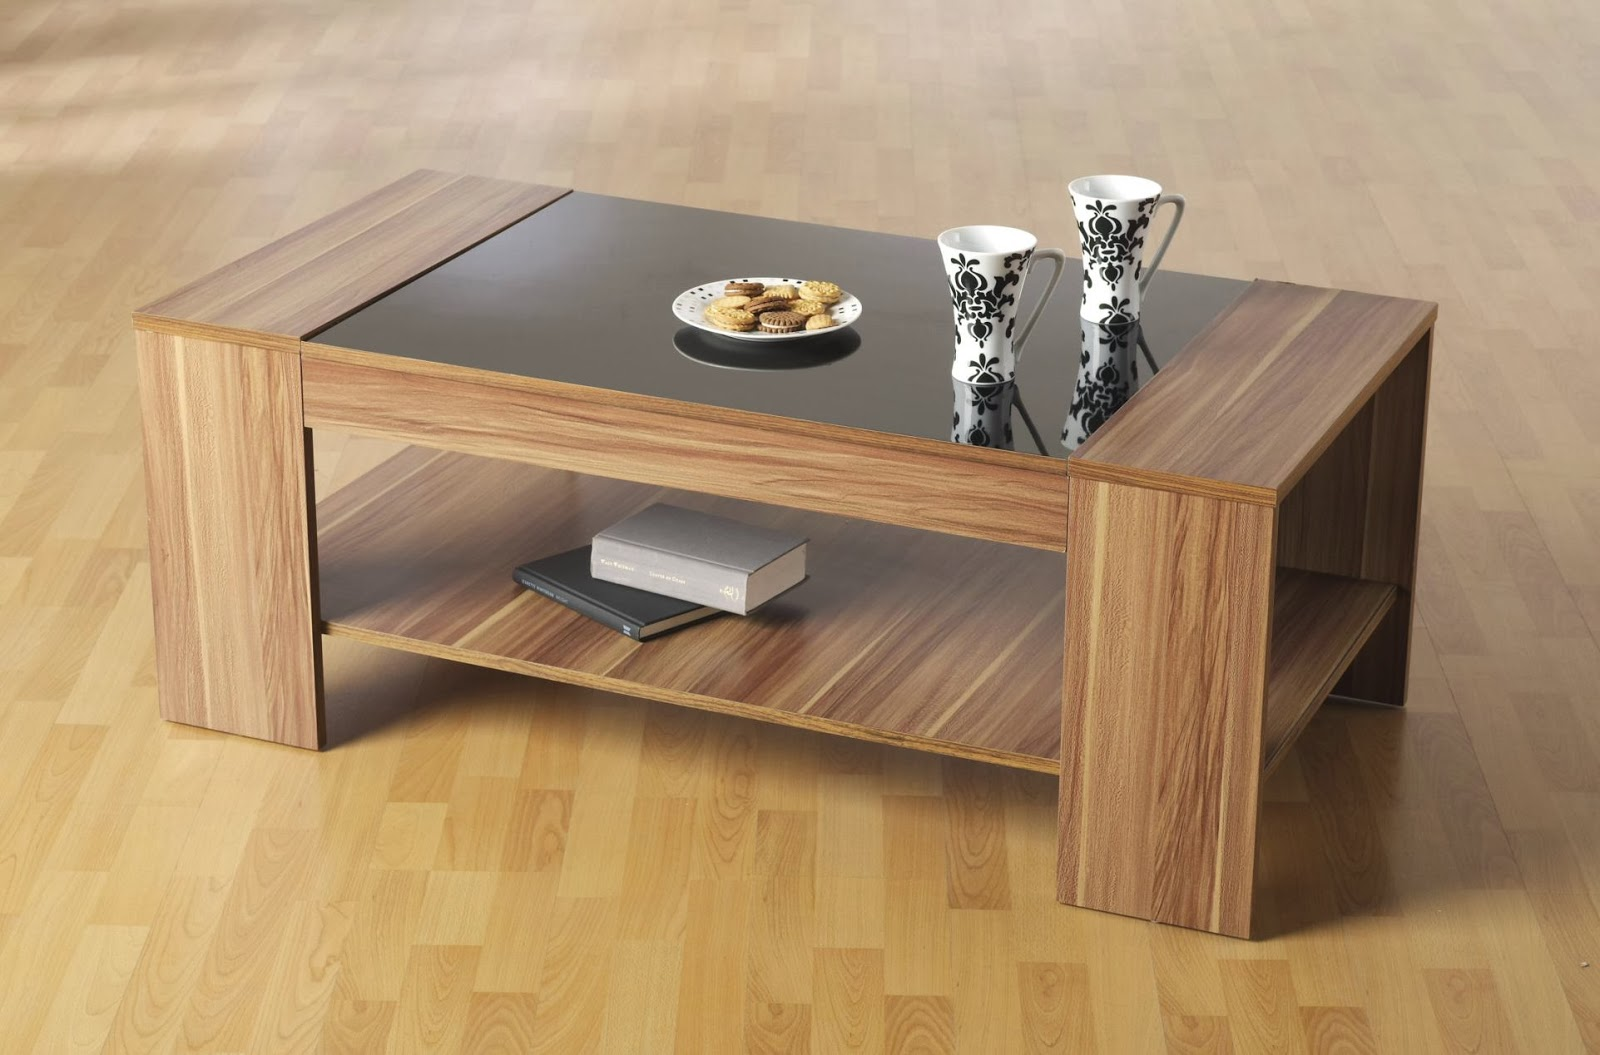 New Contemporary Coffee Tables Designs 2014 Ideas  Furniture Design